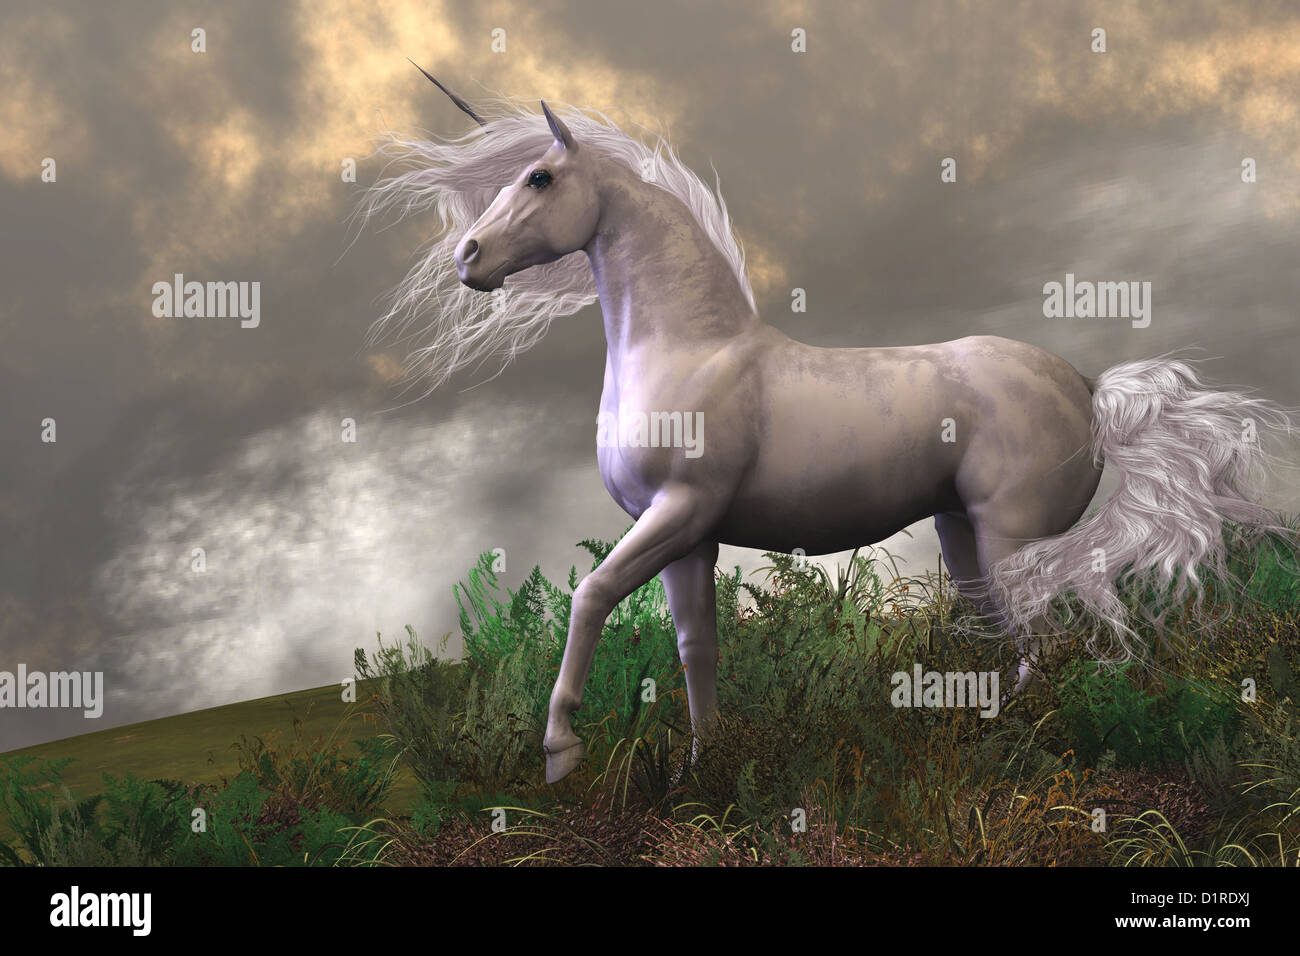 Clouds and mist surround a beautiful unicorn stallion with a white coat. - Stock Image